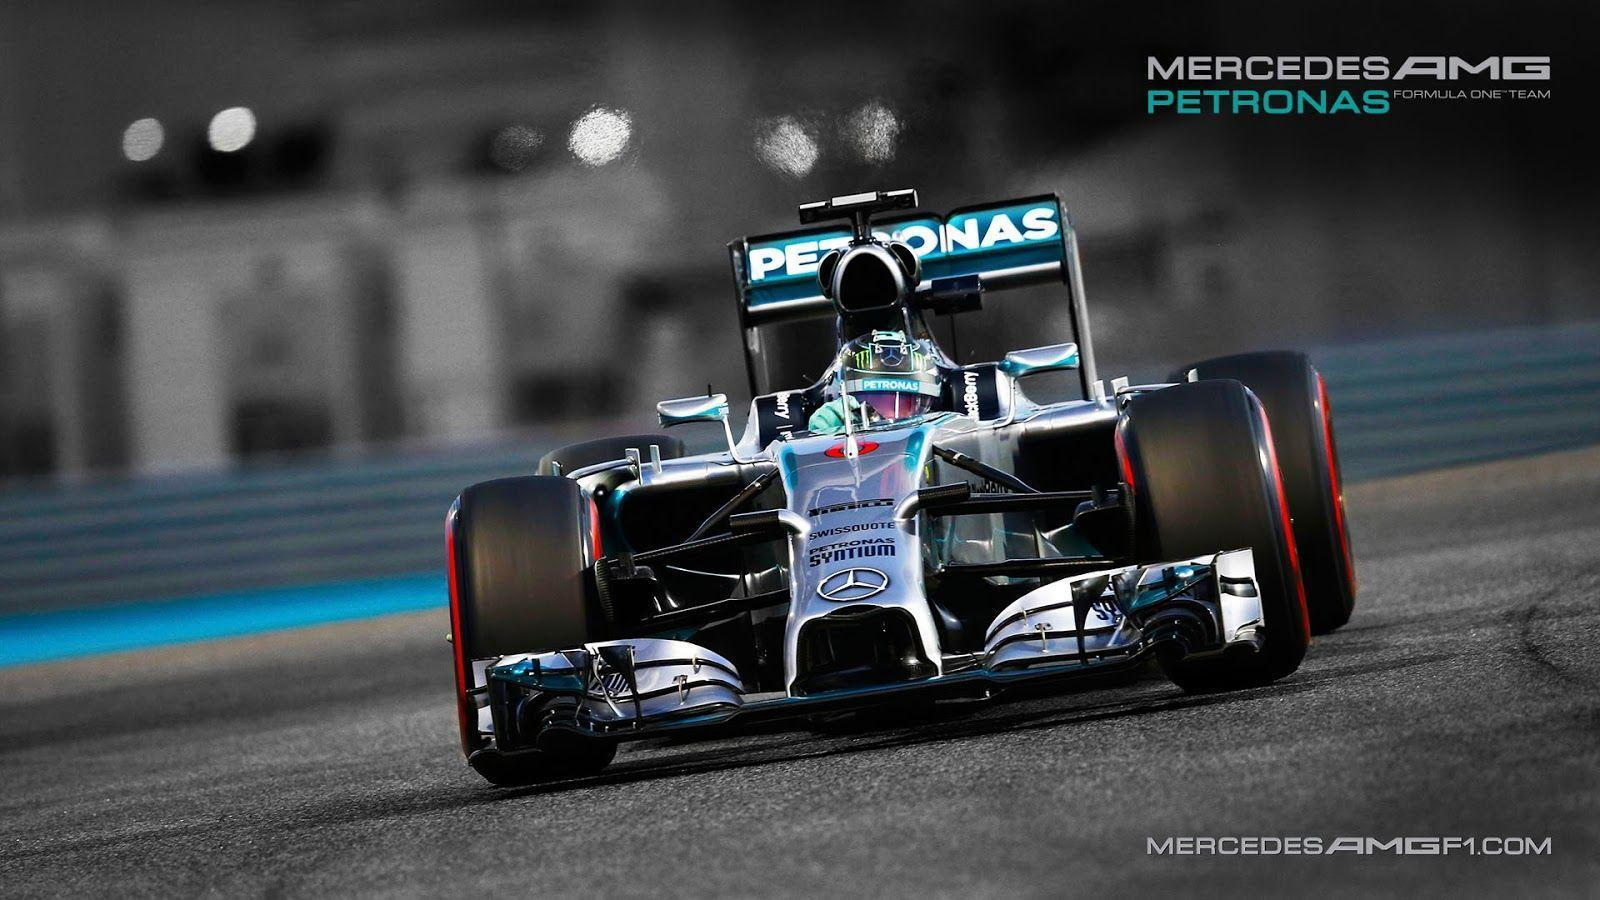 Mercedes in Motor Racing: Remembering the Greats